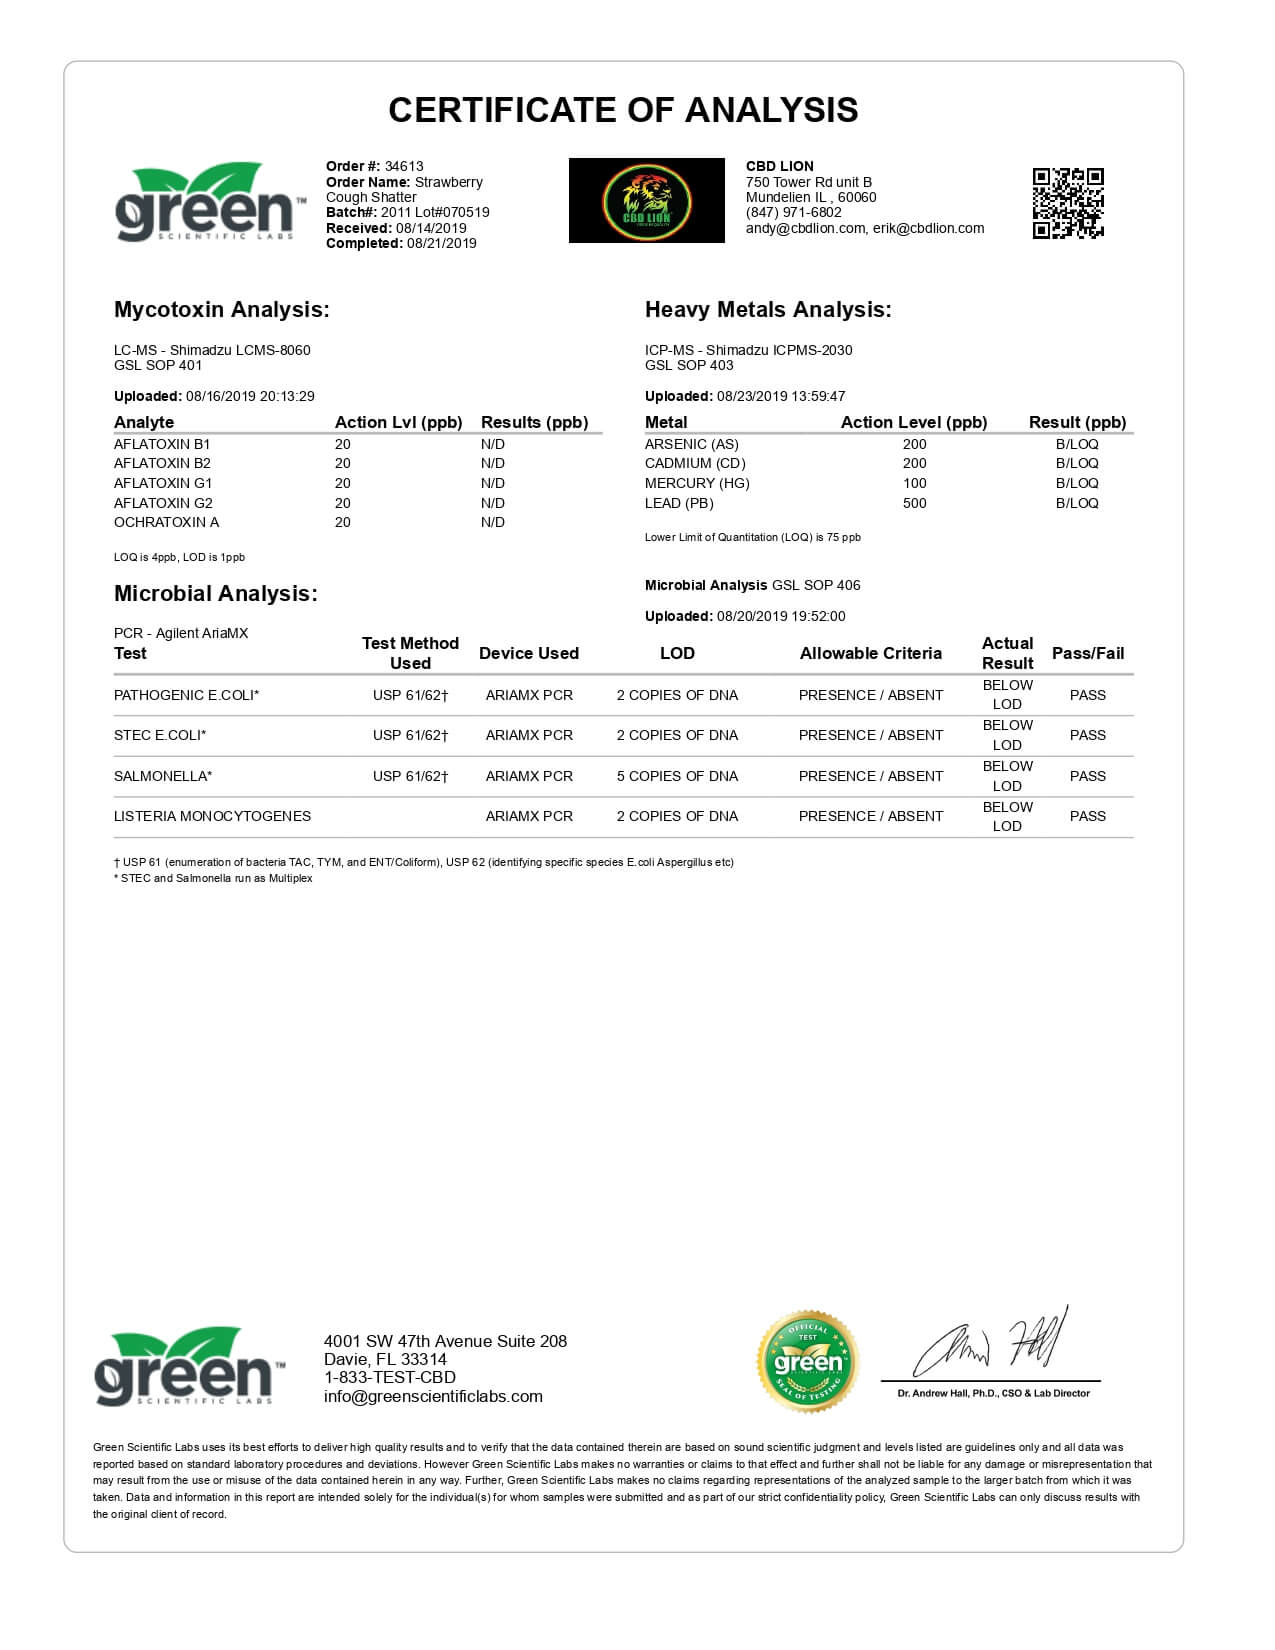 CBD Lion CBD Concentrate Strawberry Cough Shatter 0.5g Lab Report